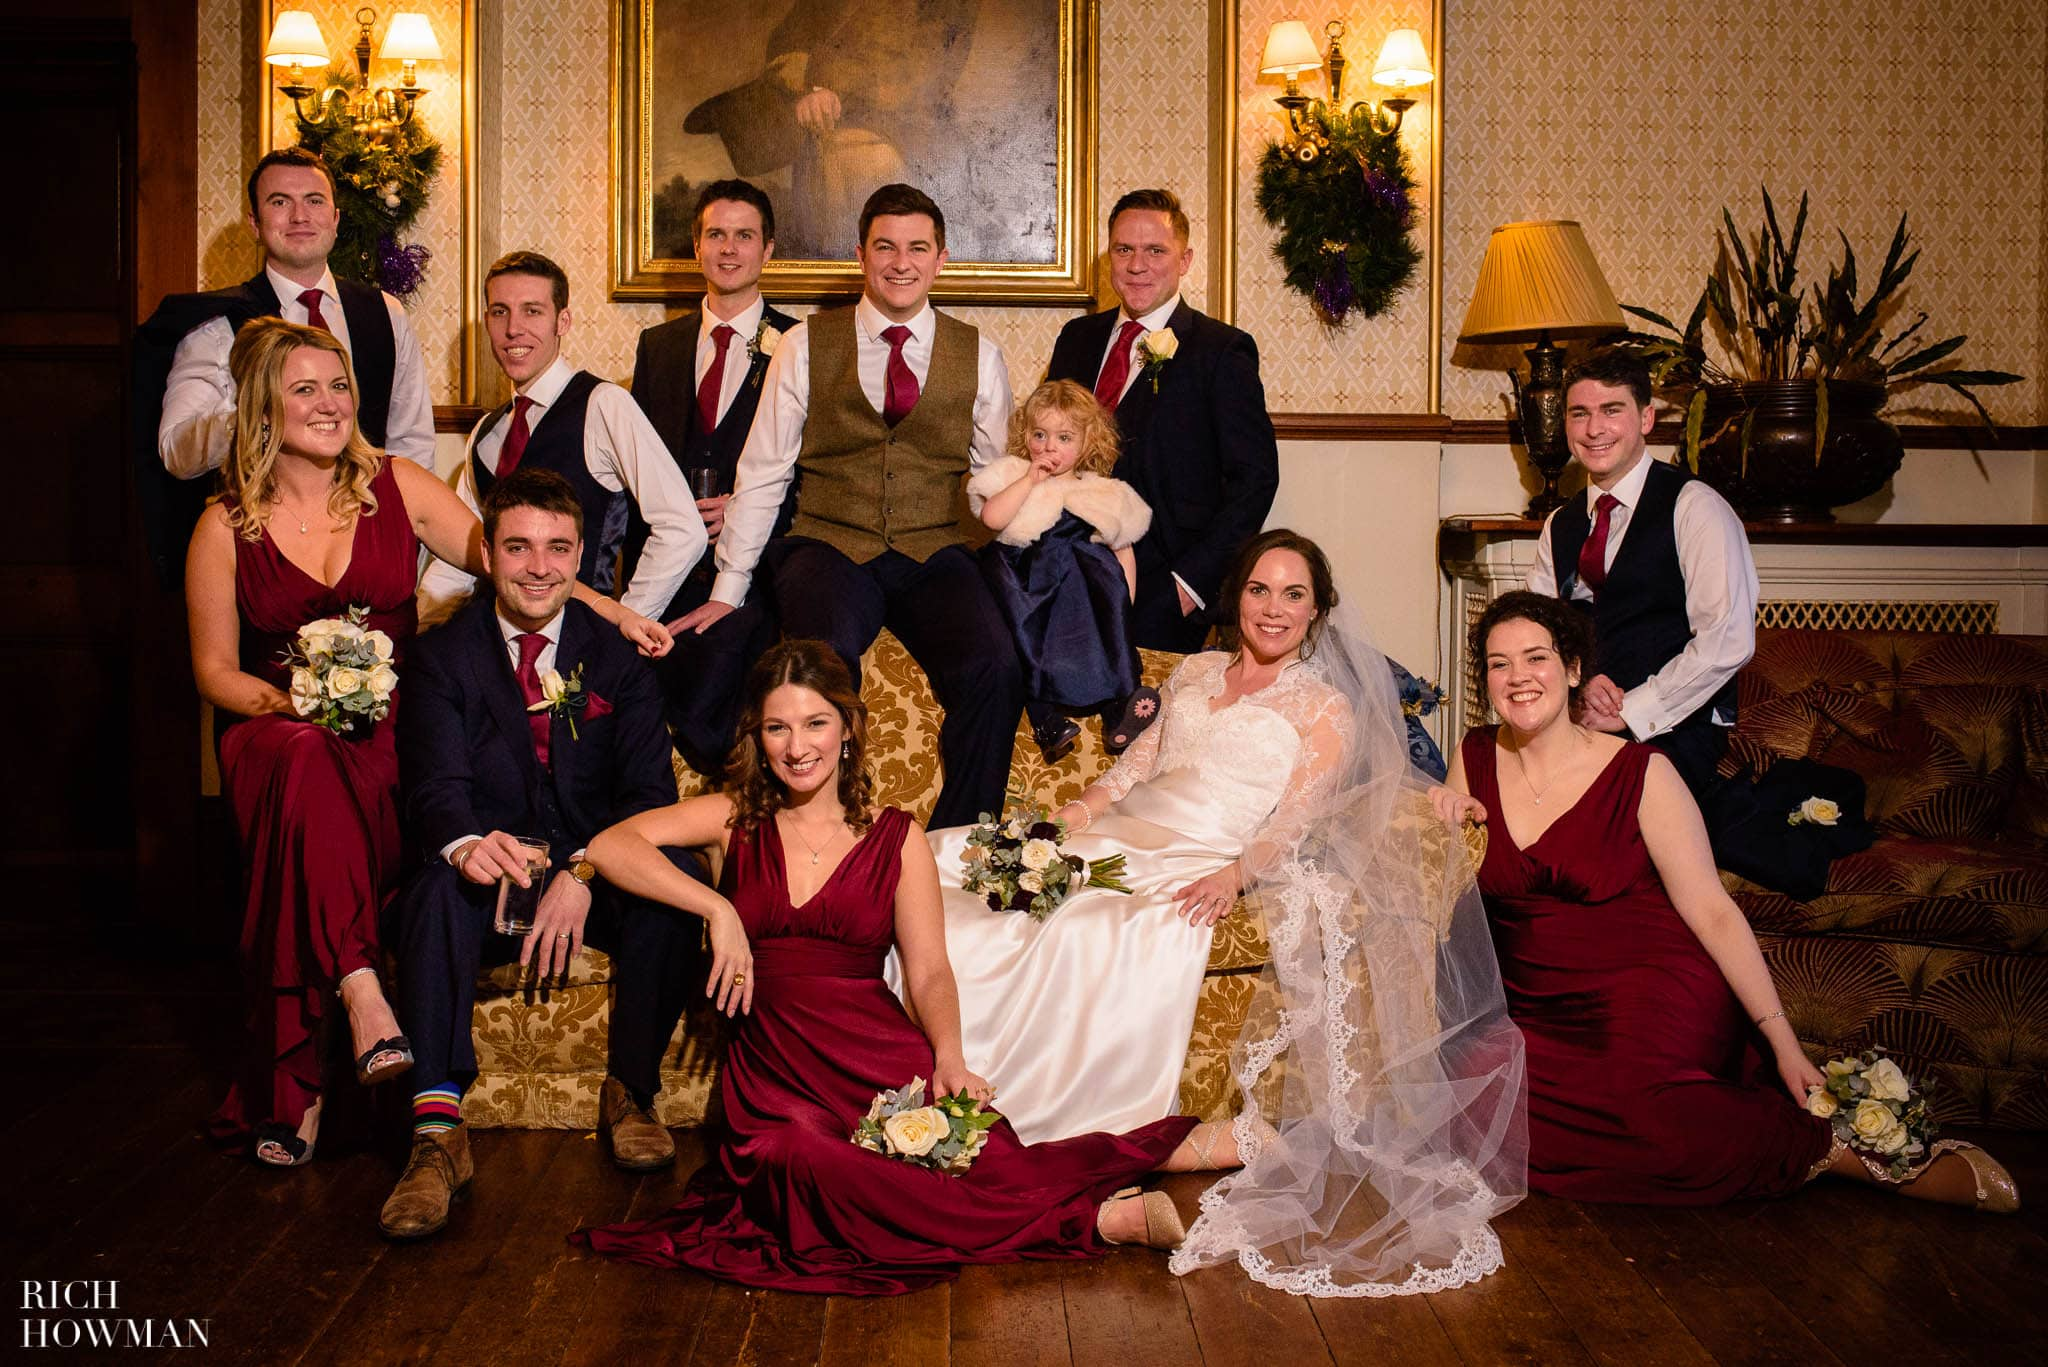 Traditional wedding photography group portrait at Huntsham Court